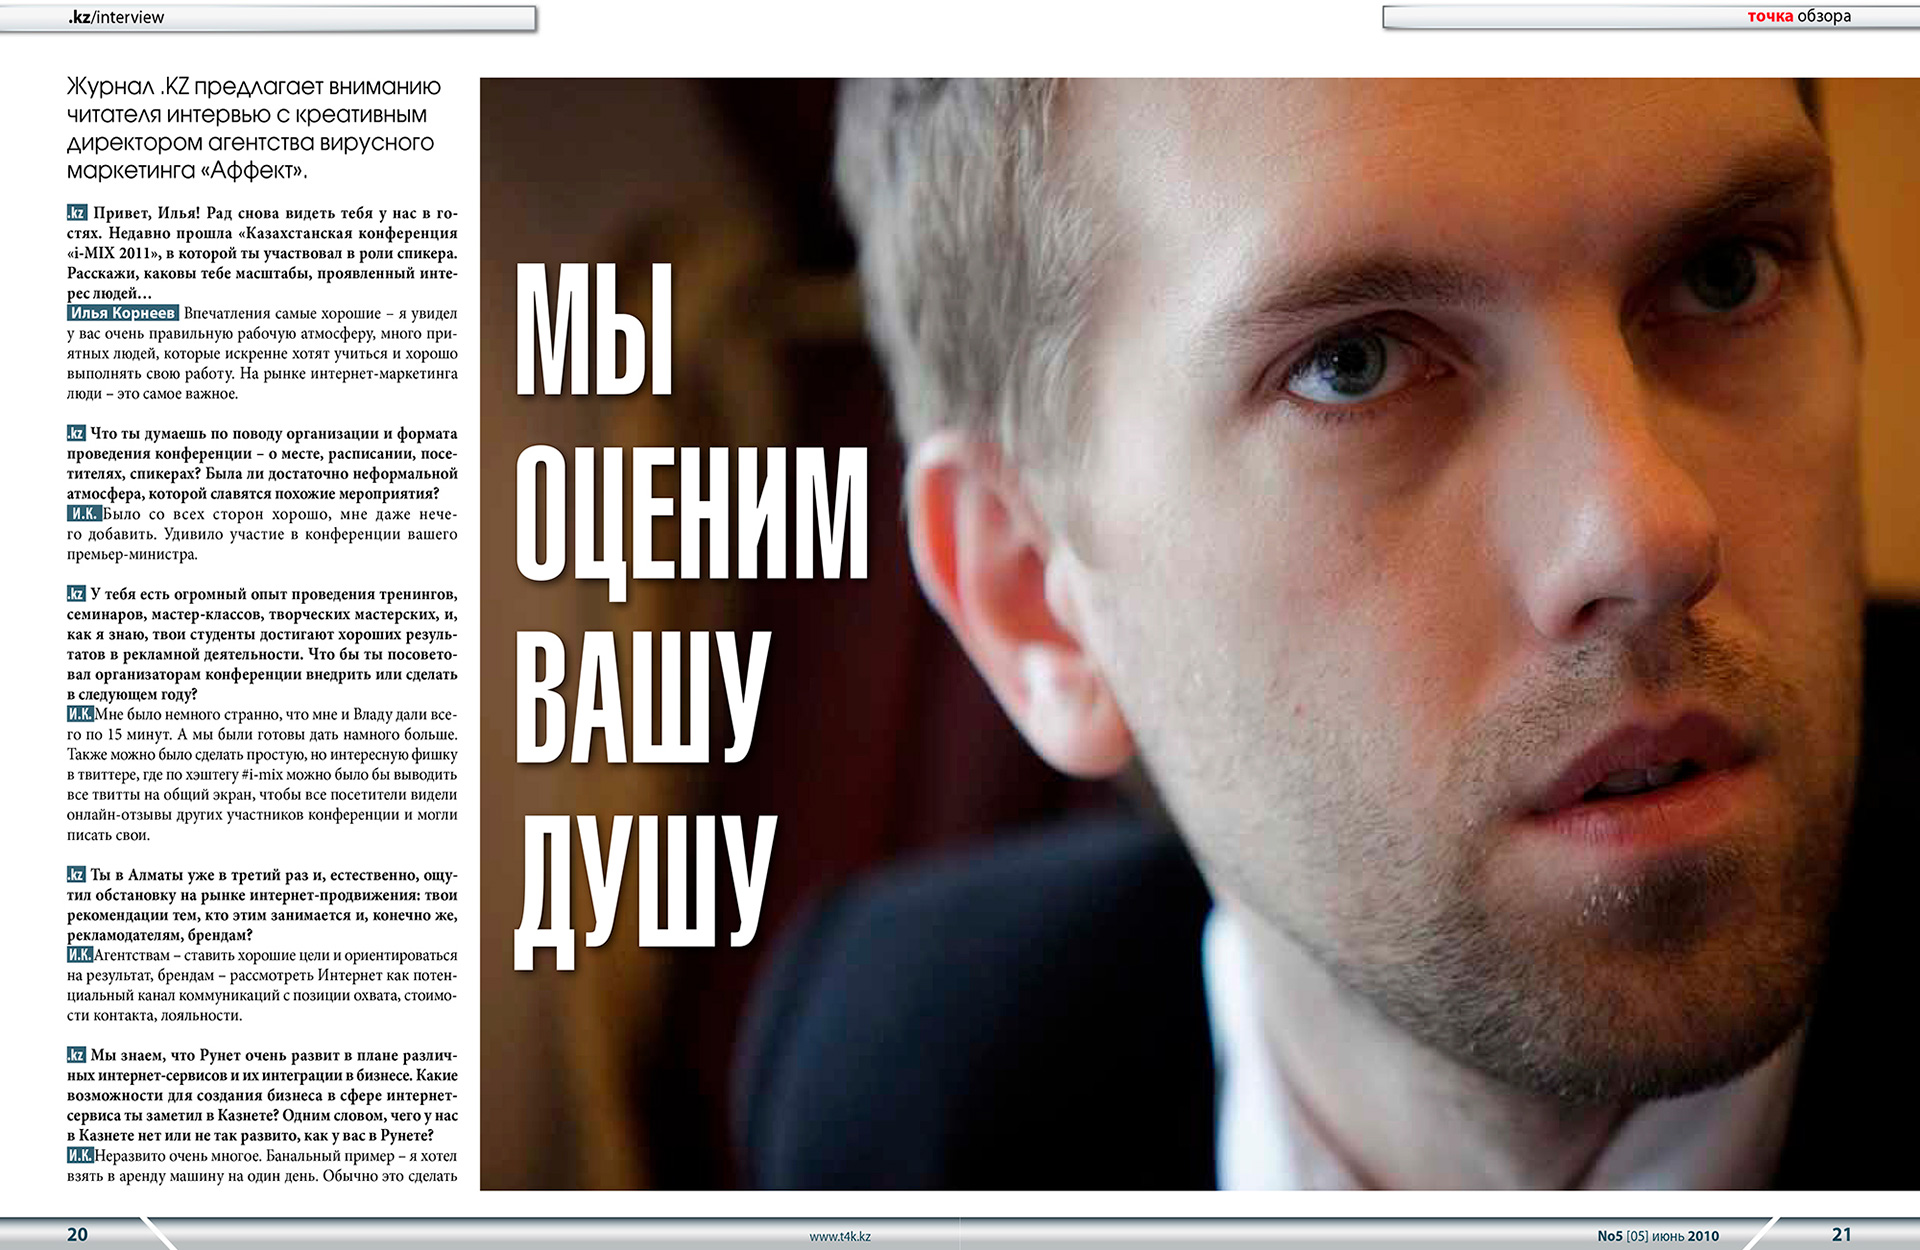 KZ magazine, Ilya Korneev, head of the agency, viral marketing